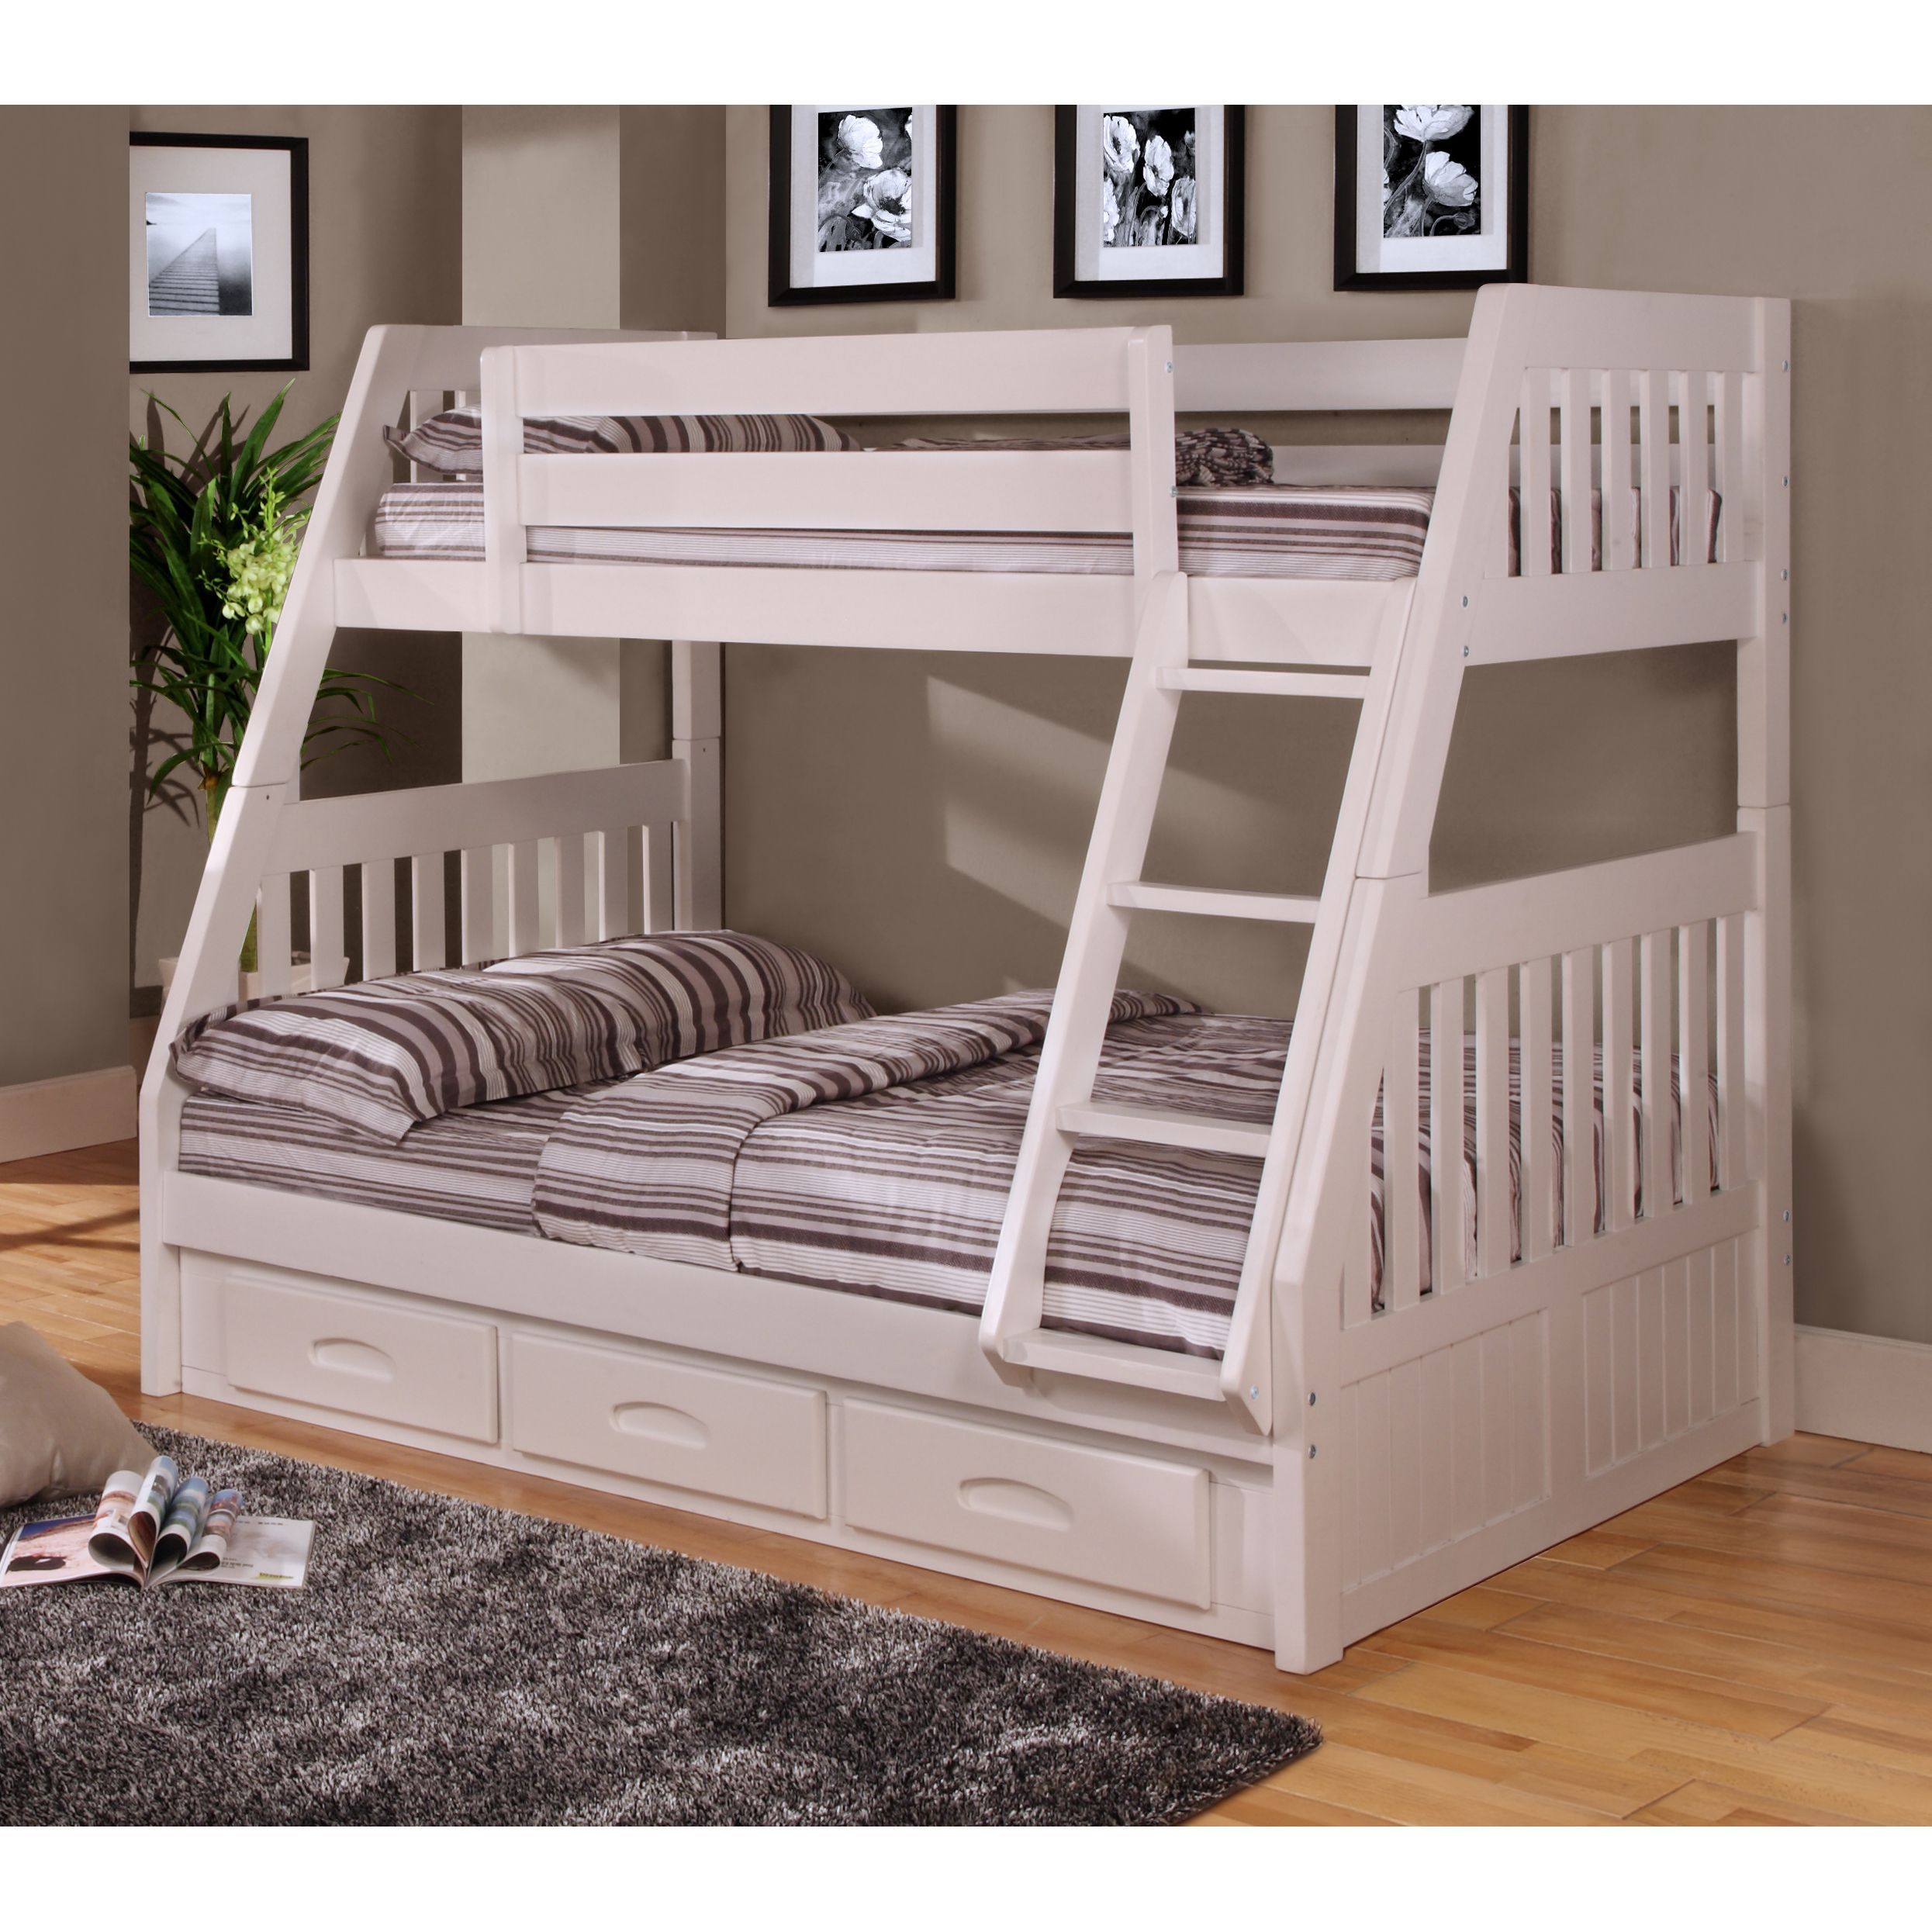 Loft bed with slide wayfair  White Finish Pine Wood Twinoverfull Bunk Bed with Drawers and